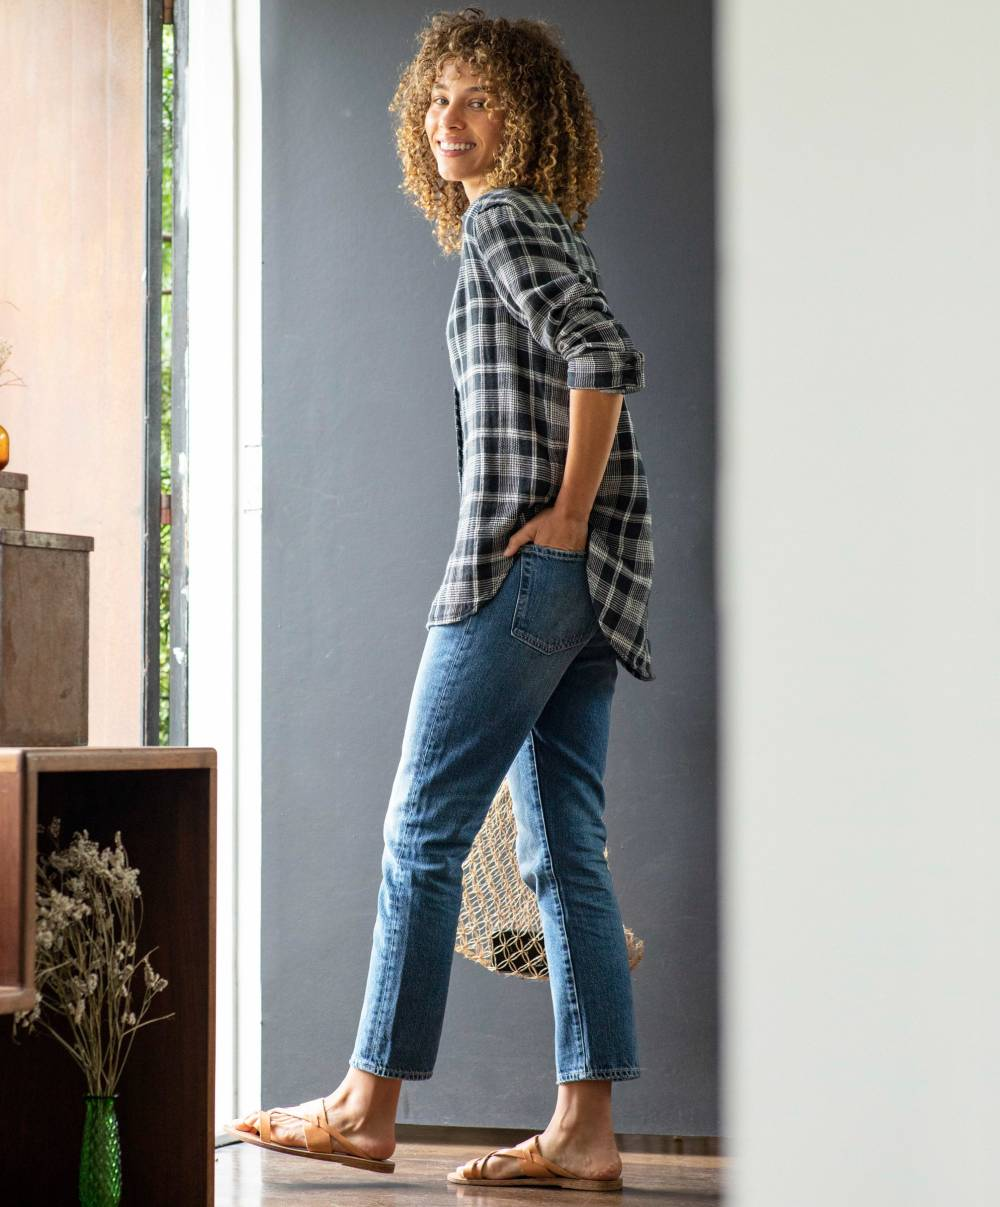 outerknown fairtrade certified organic jeans